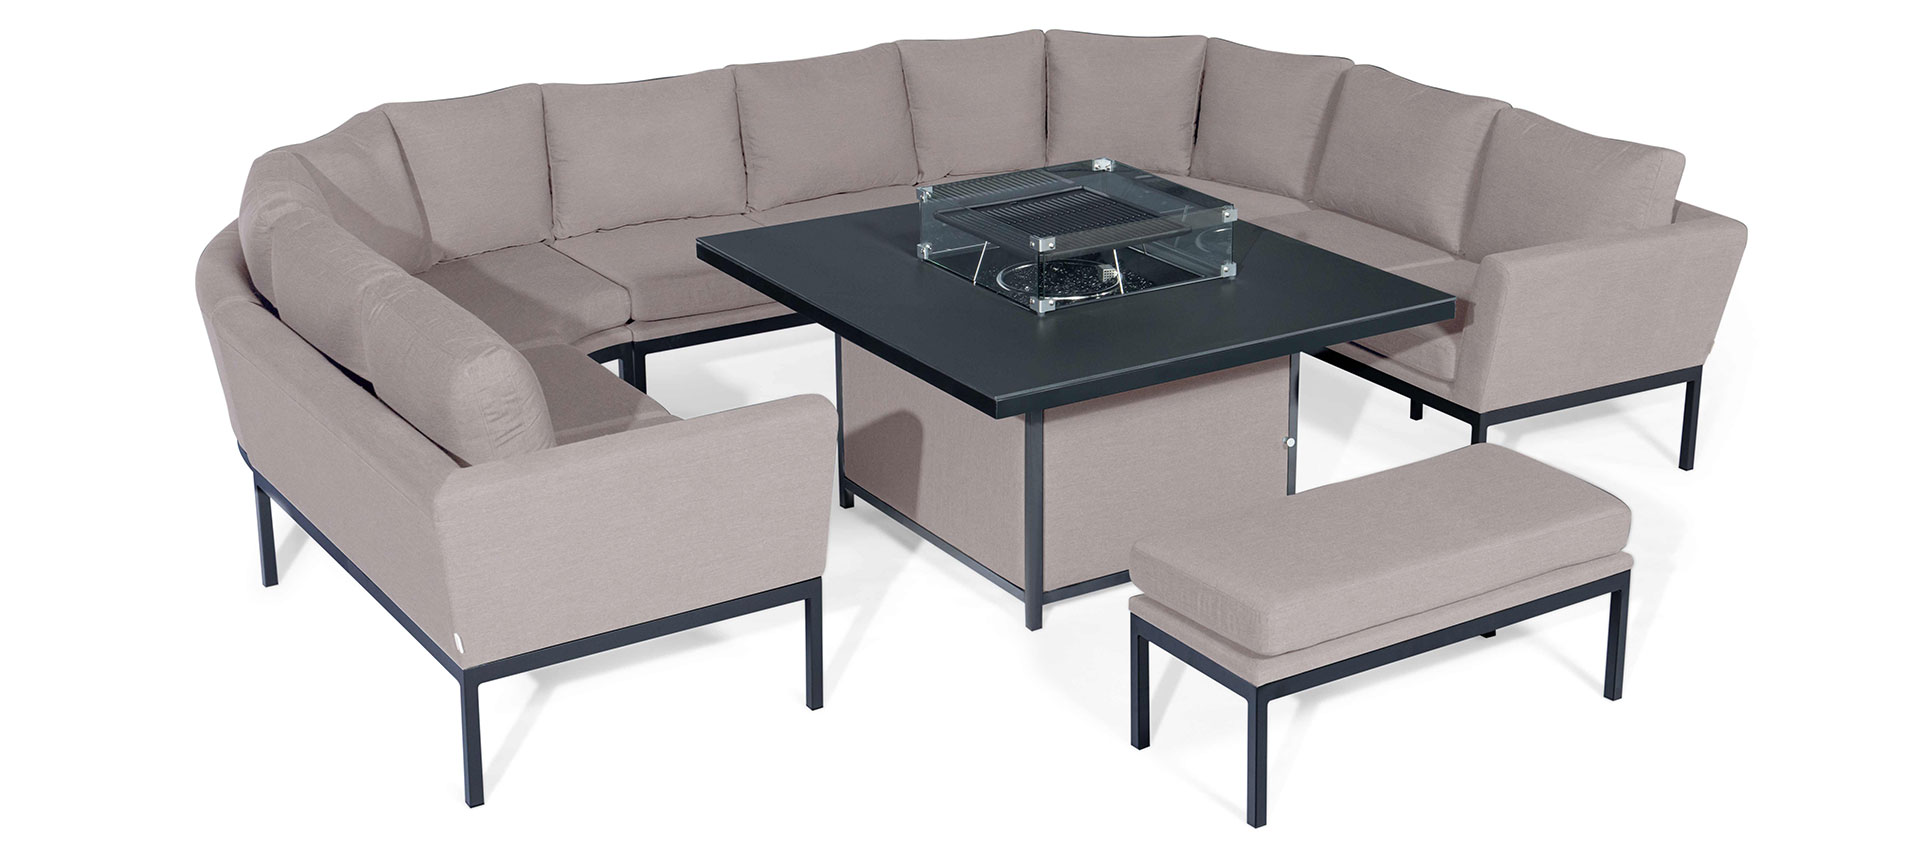 Maze Lounge - Outdoor Fabric Pulse U Shape Corner Dining Set - With Firepit Table - Taupe